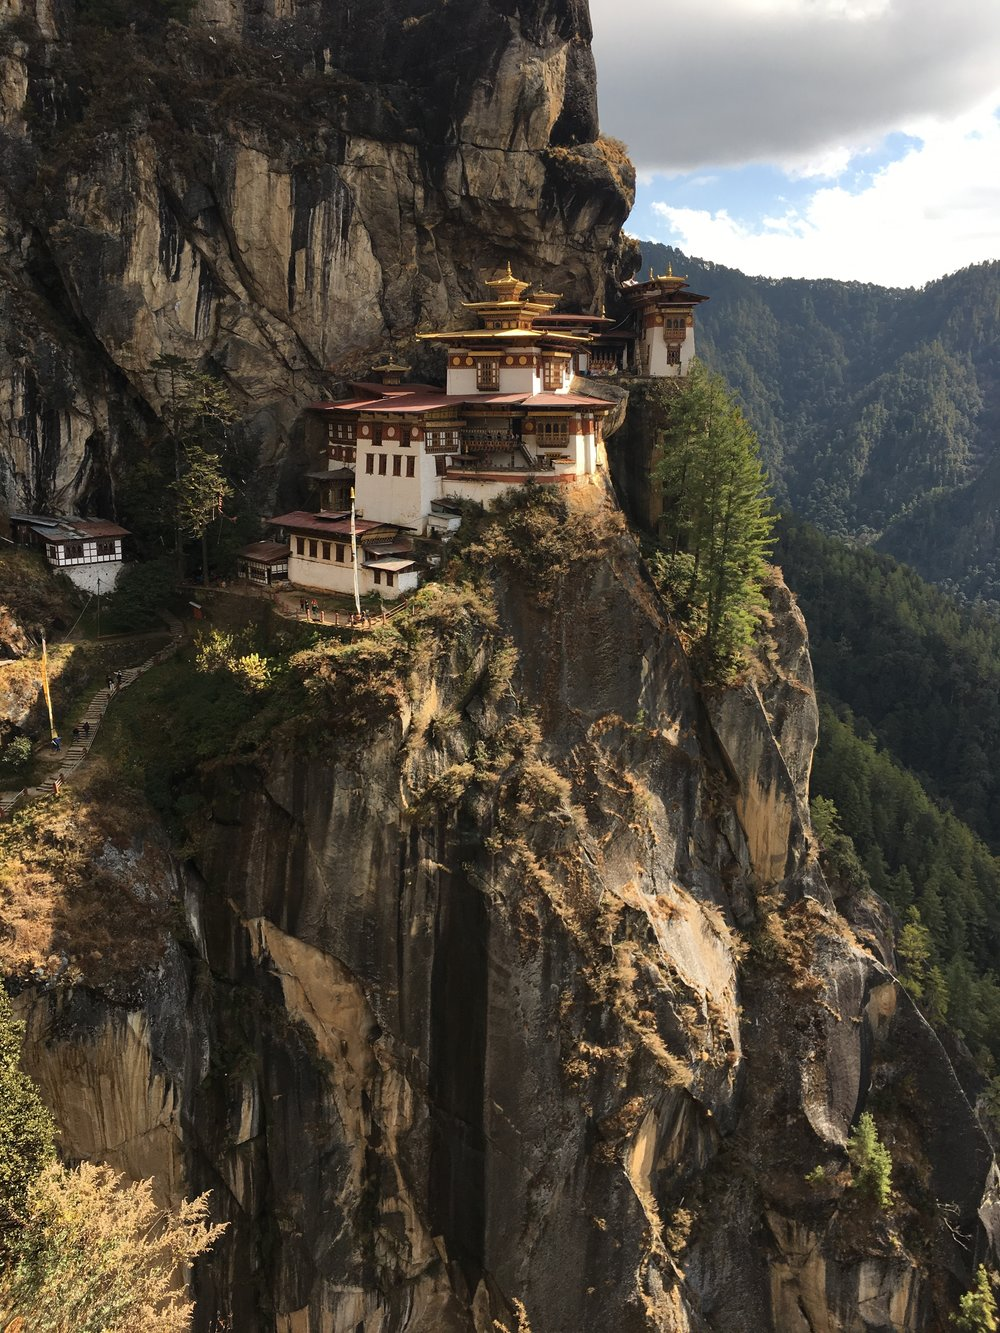 Tiger's Nest, the most auspicious temple in Bhutan, is perched on a cliff 900 meters off the ground.